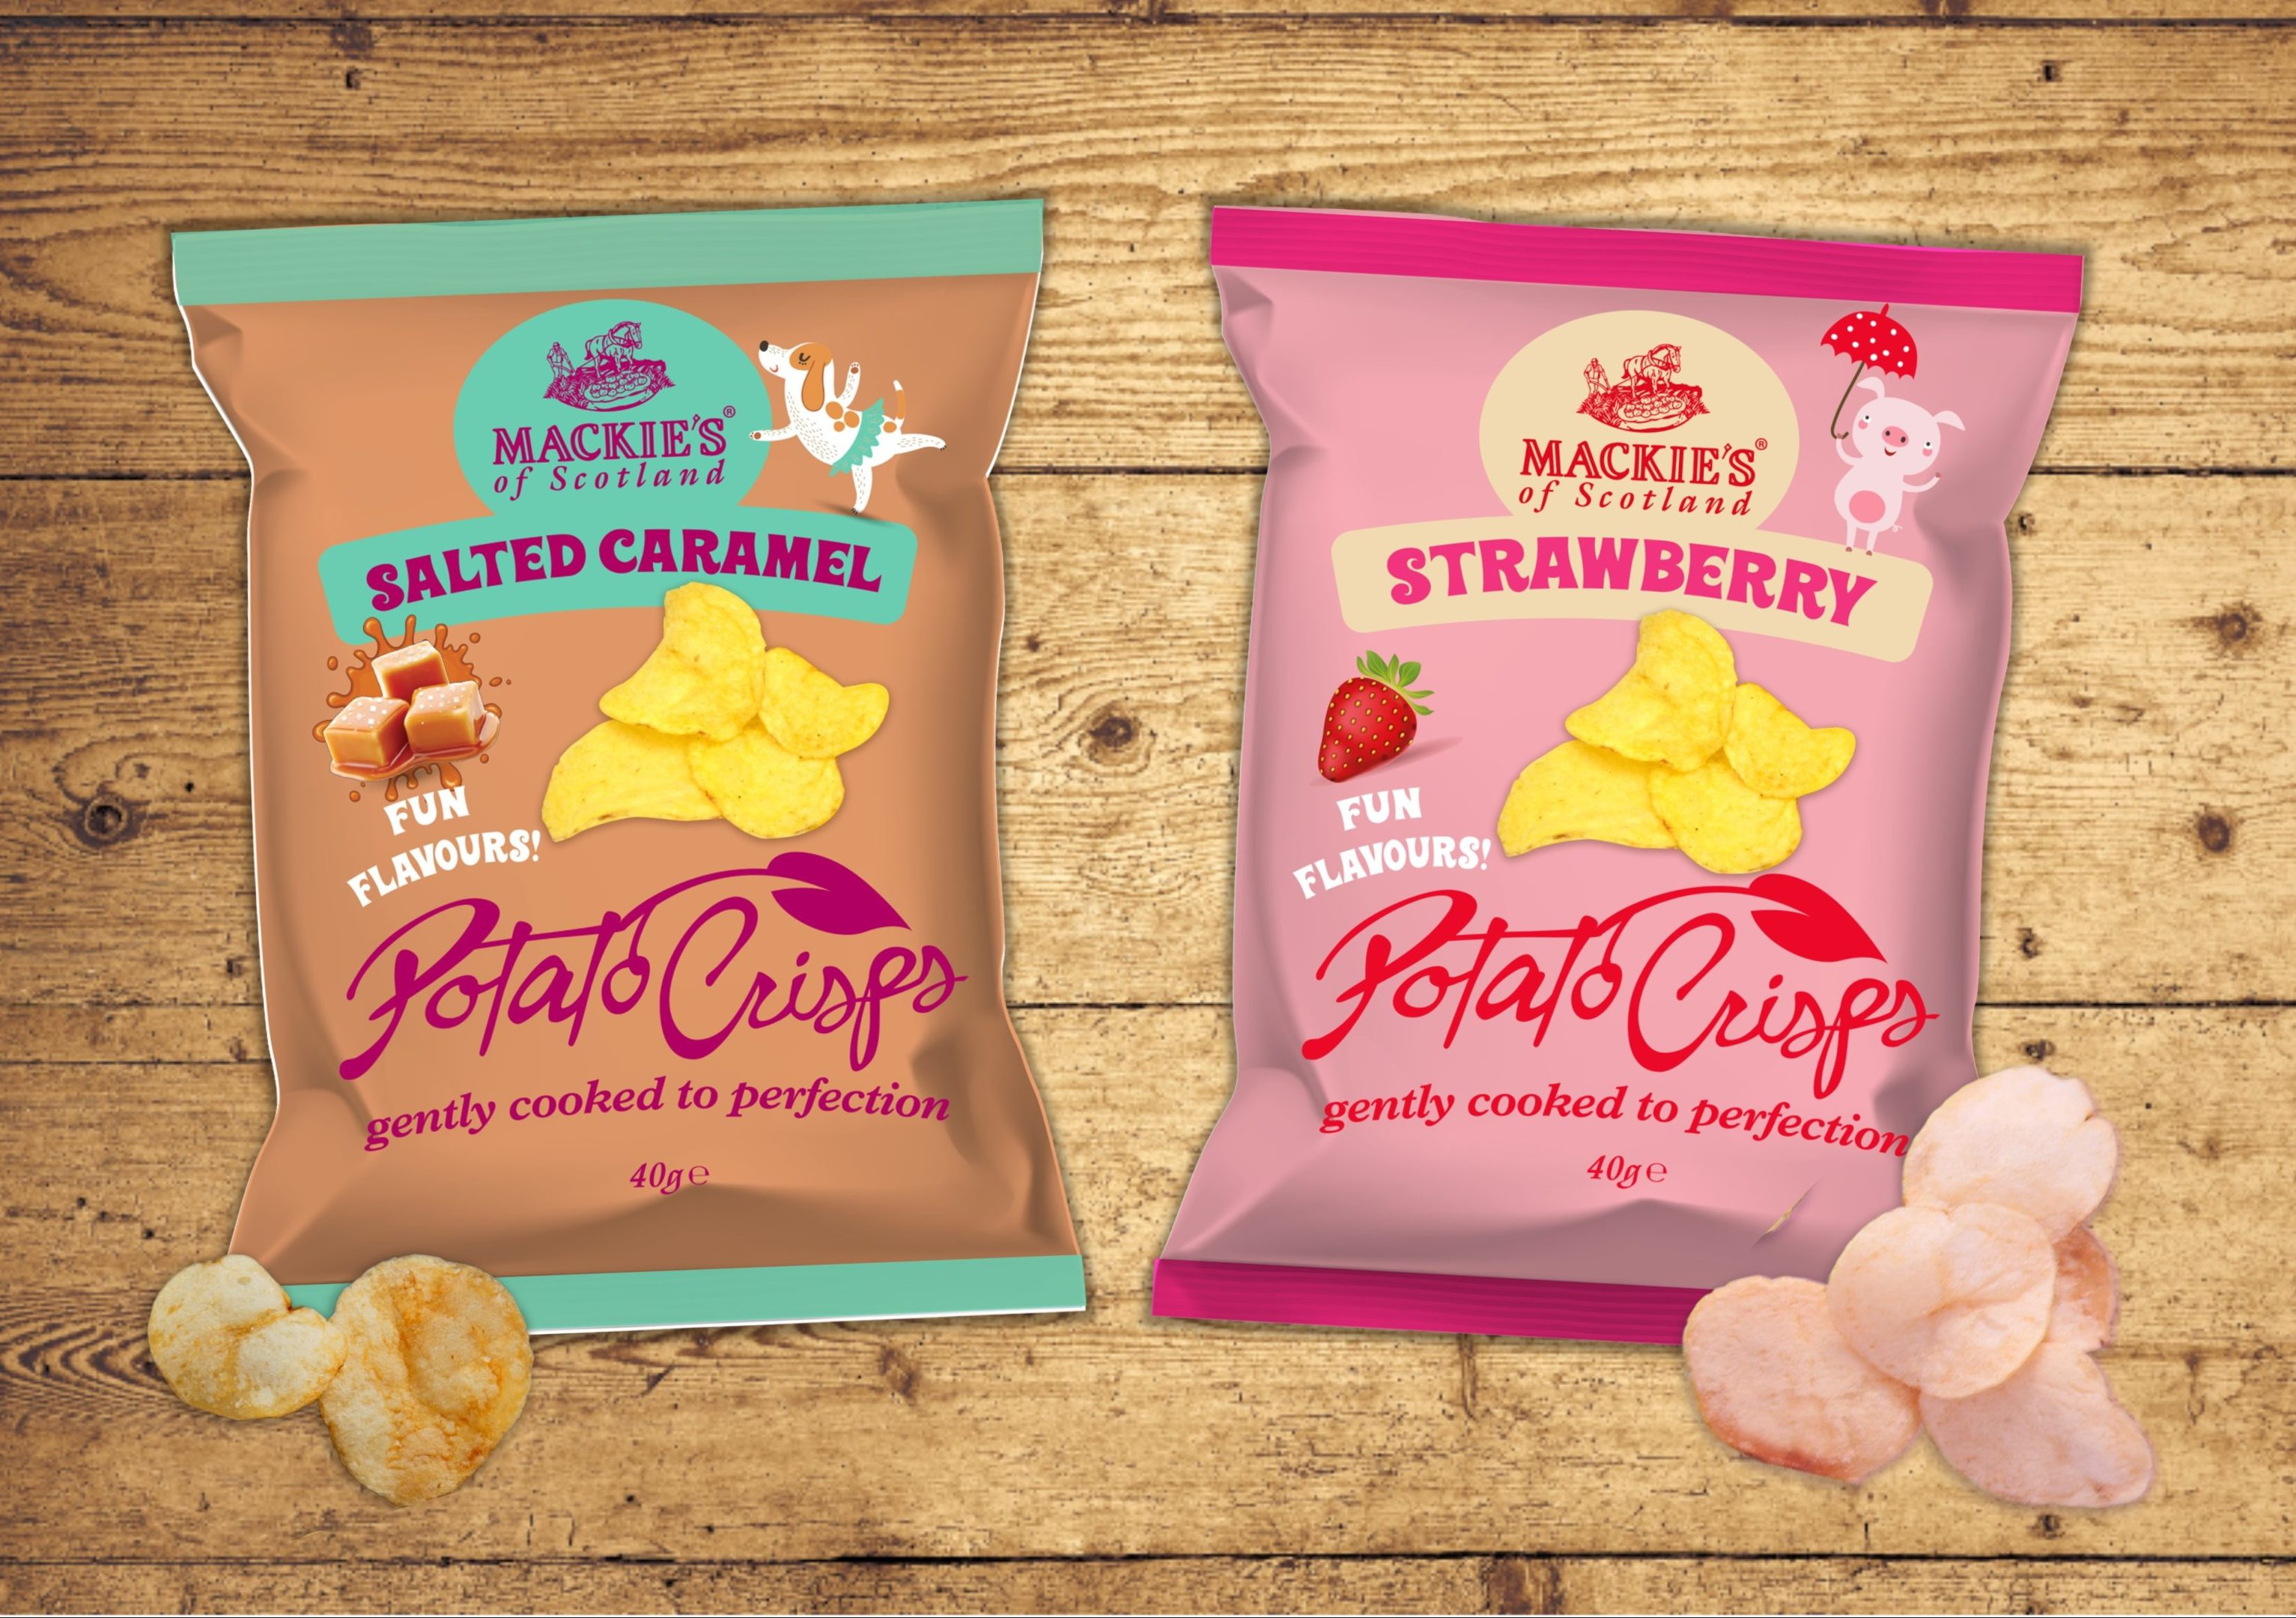 Sweet flavoured crisps from Mackies at Taypack for Chinese market.